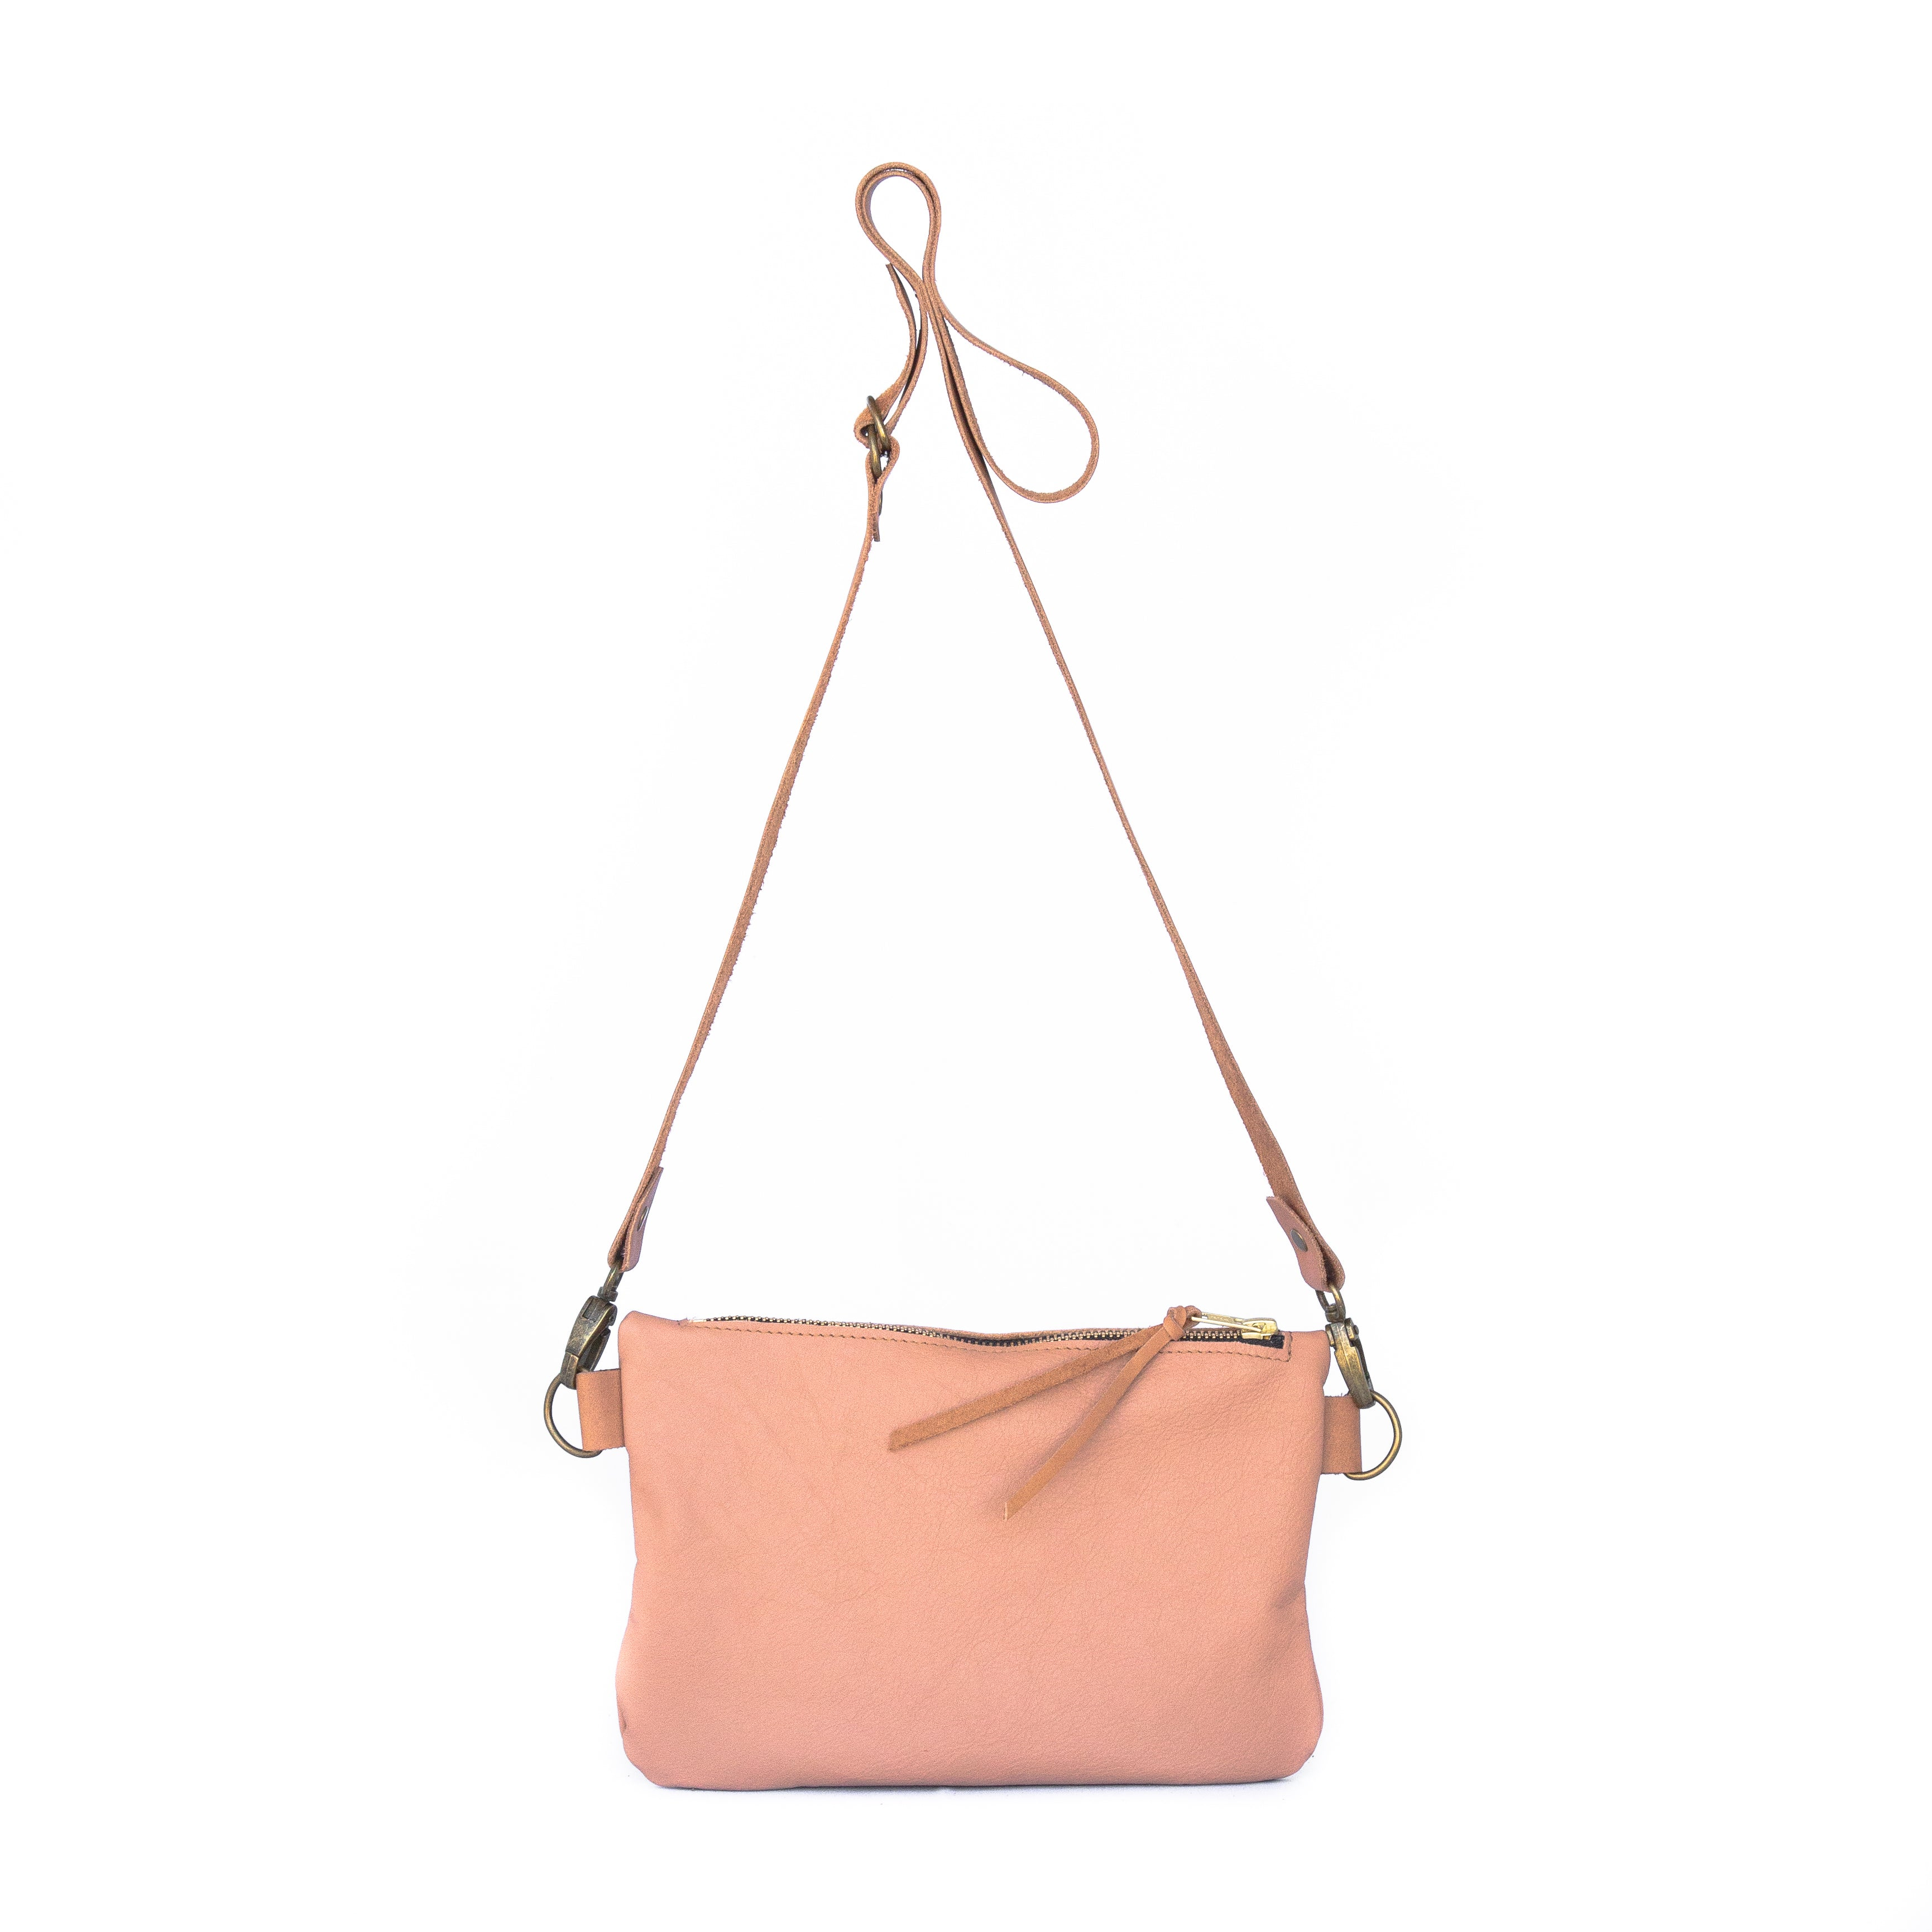 The Dime Bag in Blush Leather - handcrafted by Market Canvas Leather in Tofino, BC, Canada